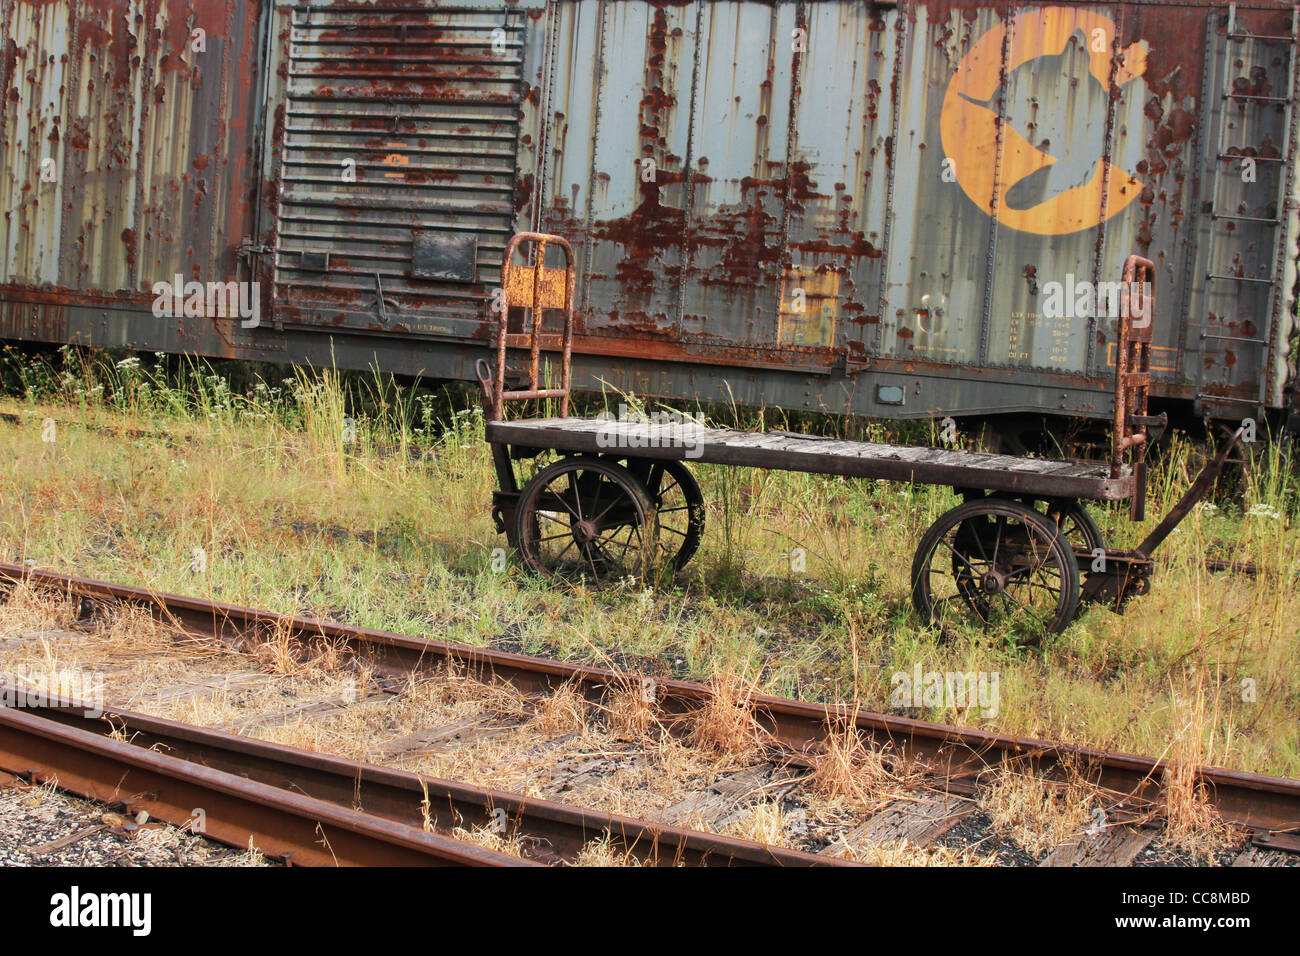 Baggage cart and freight car - Stock Image